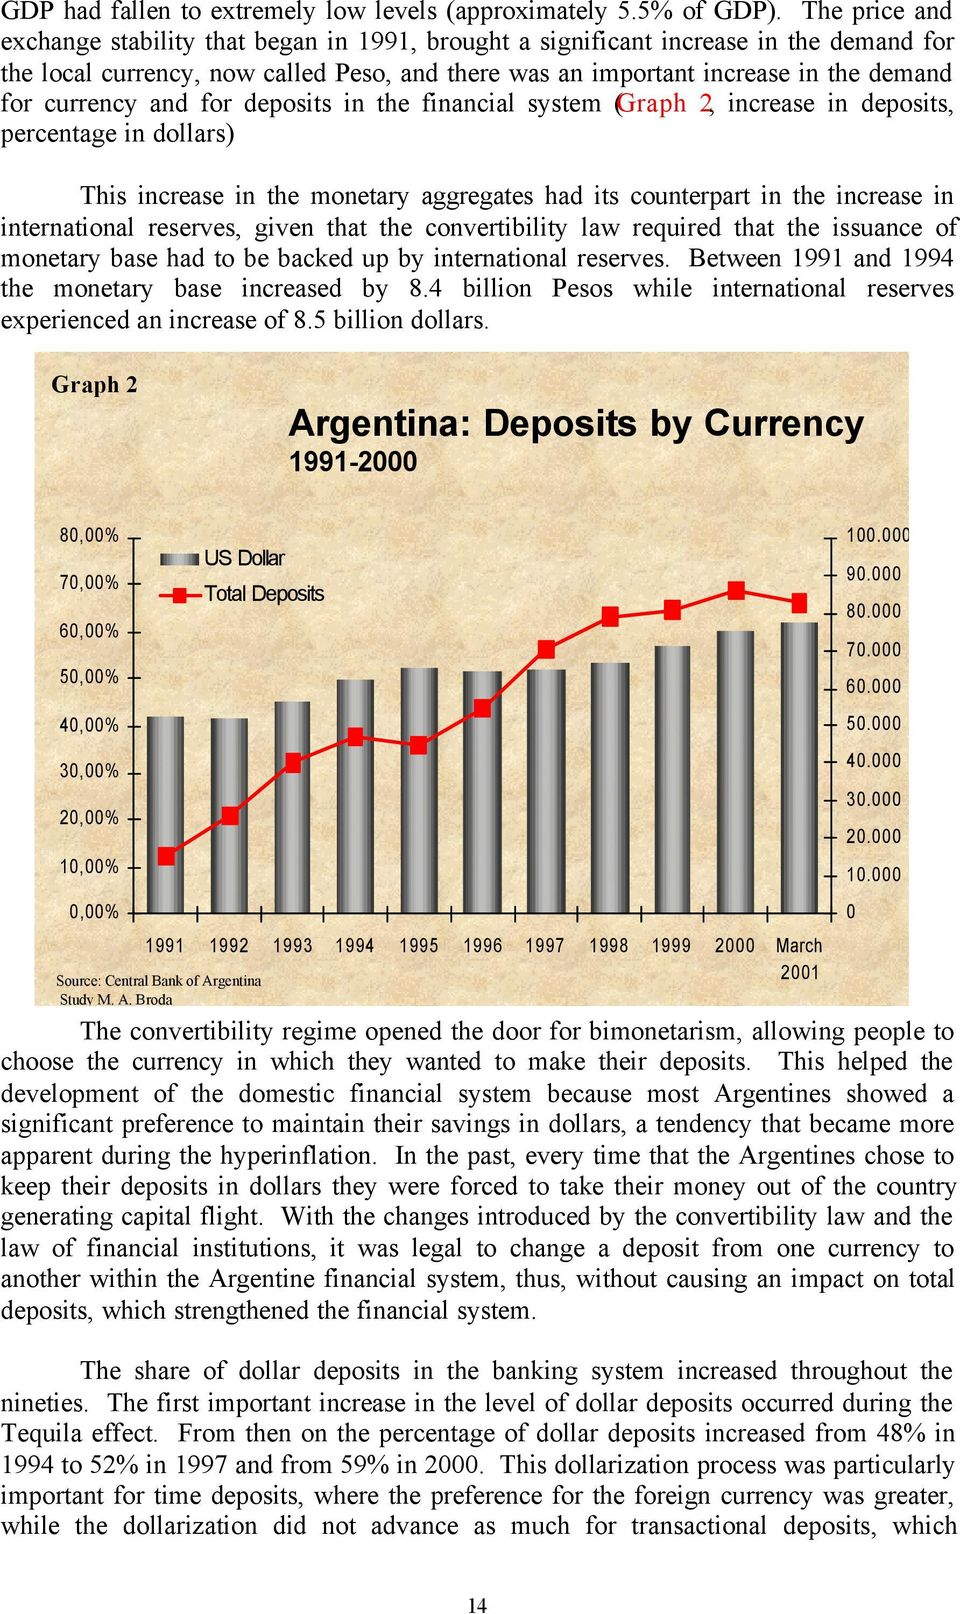 currency and for deposits in the financial system (Graph 2, increase in deposits, percentage in dollars) This increase in the monetary aggregates had its counterpart in the increase in international